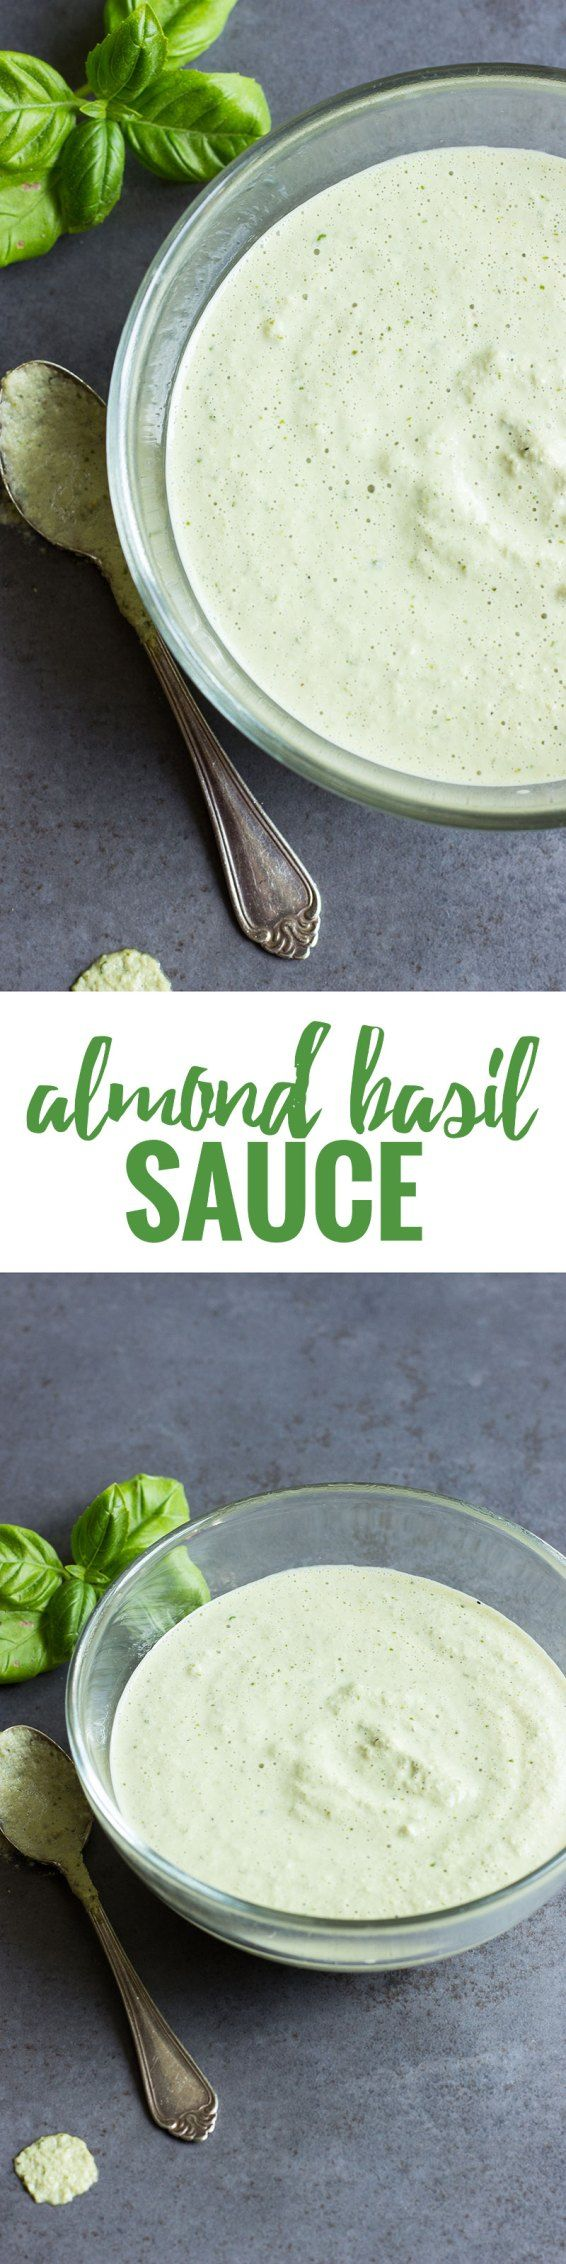 This VEGAN & GLUTEN FREE almond basil sauce is the best condiment to salads, fish and even pizza! See more at www.nutritionistmeetschef.com